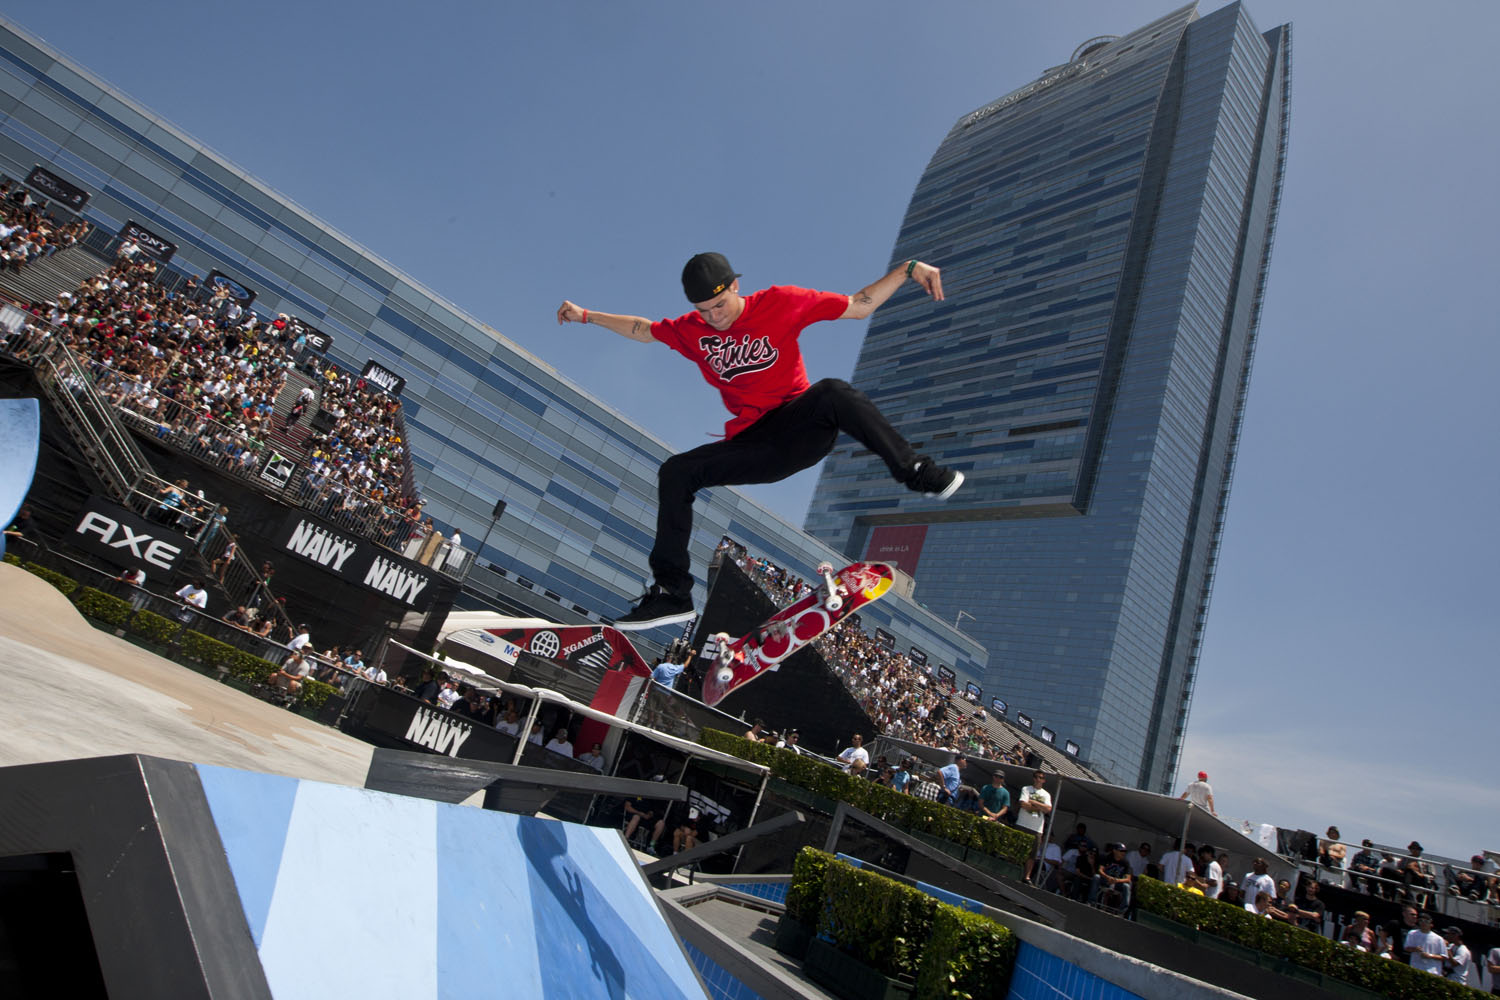 Ryan Sheckler competes at the Skate Street event during X Games 16 on July 31, 2010 in Los Angeles, California.